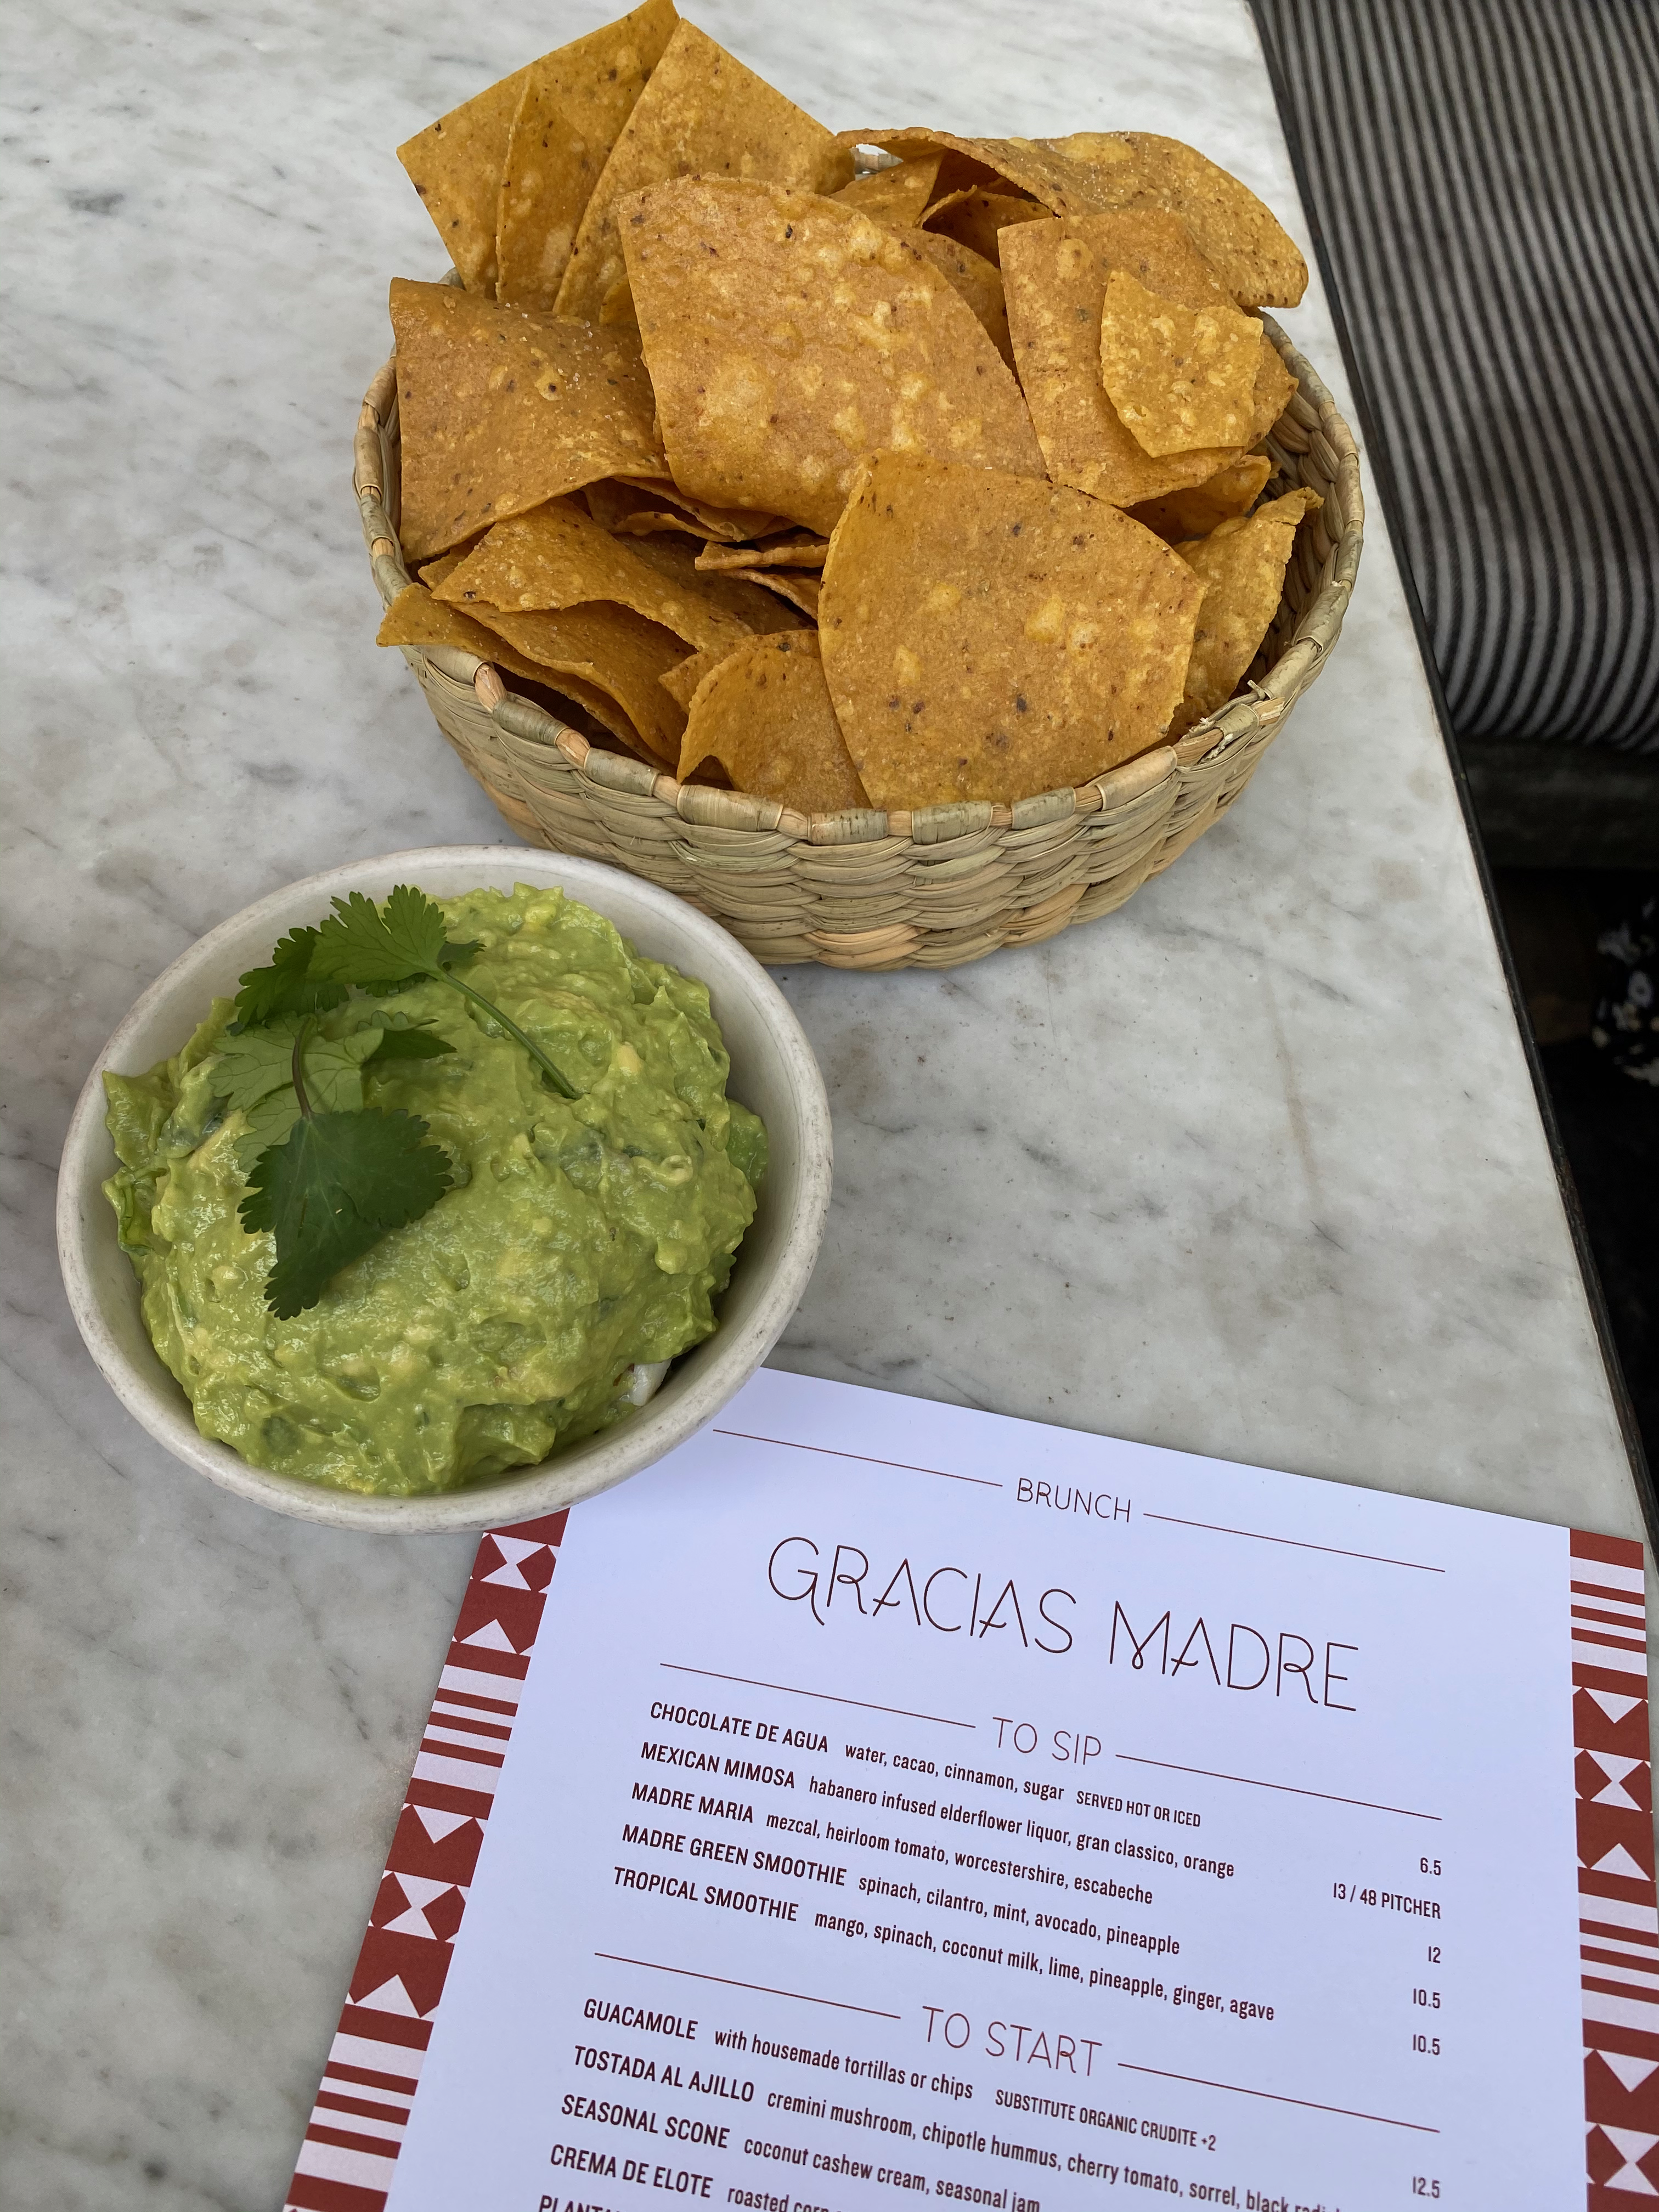 Guac and Chips at Gracias Madre in West Hollywood, CA